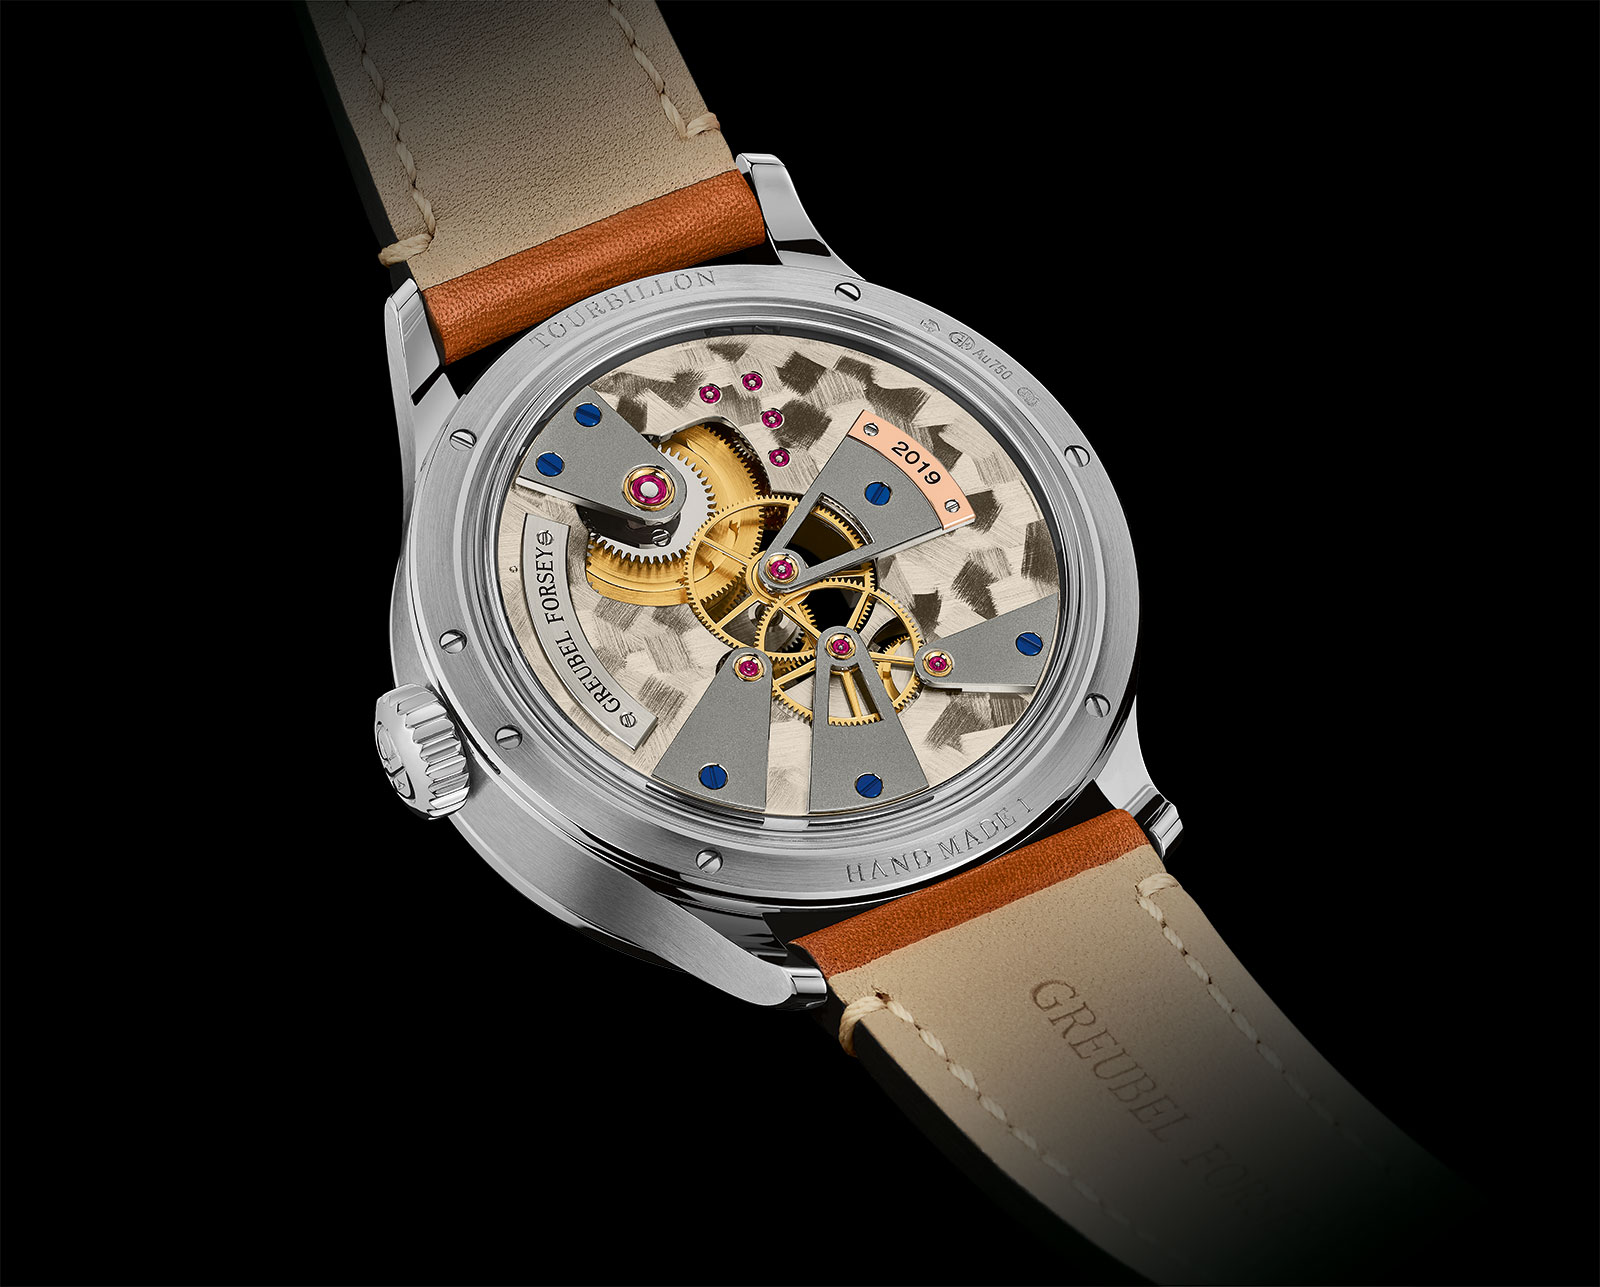 Greubel Forsey Hand Made 1 watch 2